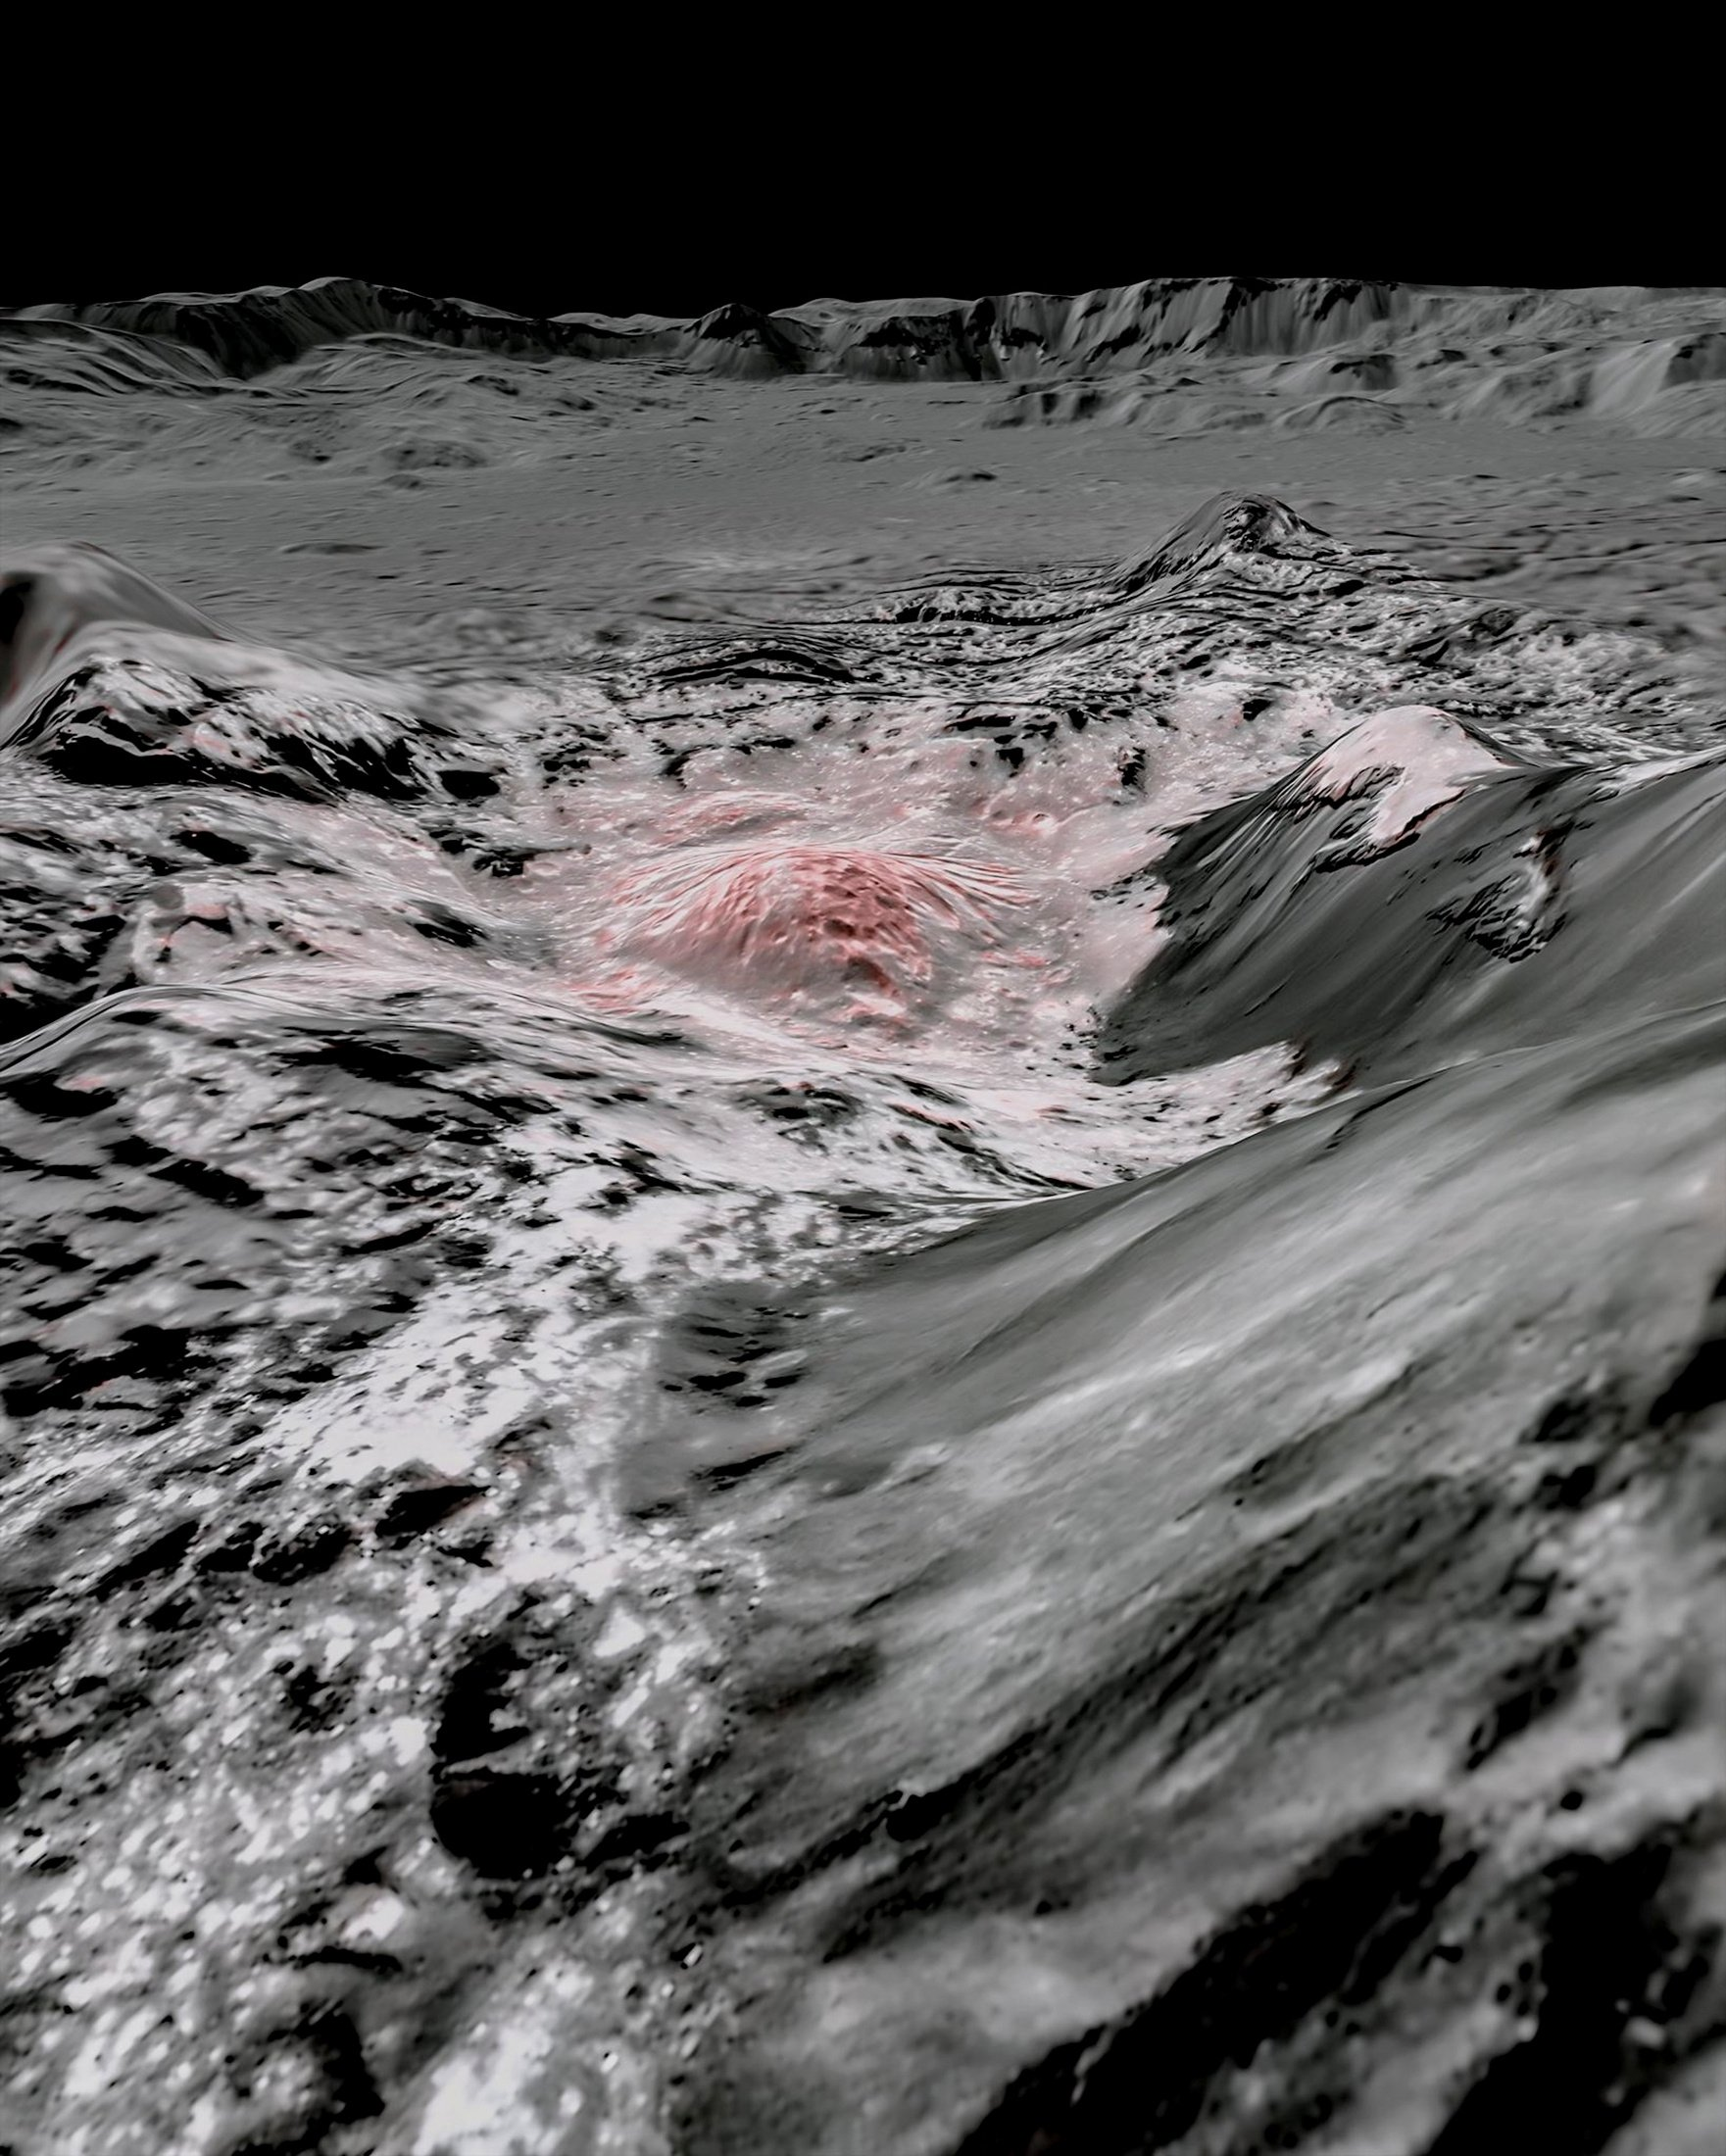 Mosaic image using false color to highlight the recently exposed brine, or salty liquids, that were pushed up from a deep reservoir under the crust of the dwarf planet Ceres. (NASA/JPL-Caltech/UCLA/MPS/DLR/IDA/Handout via REUTERS)